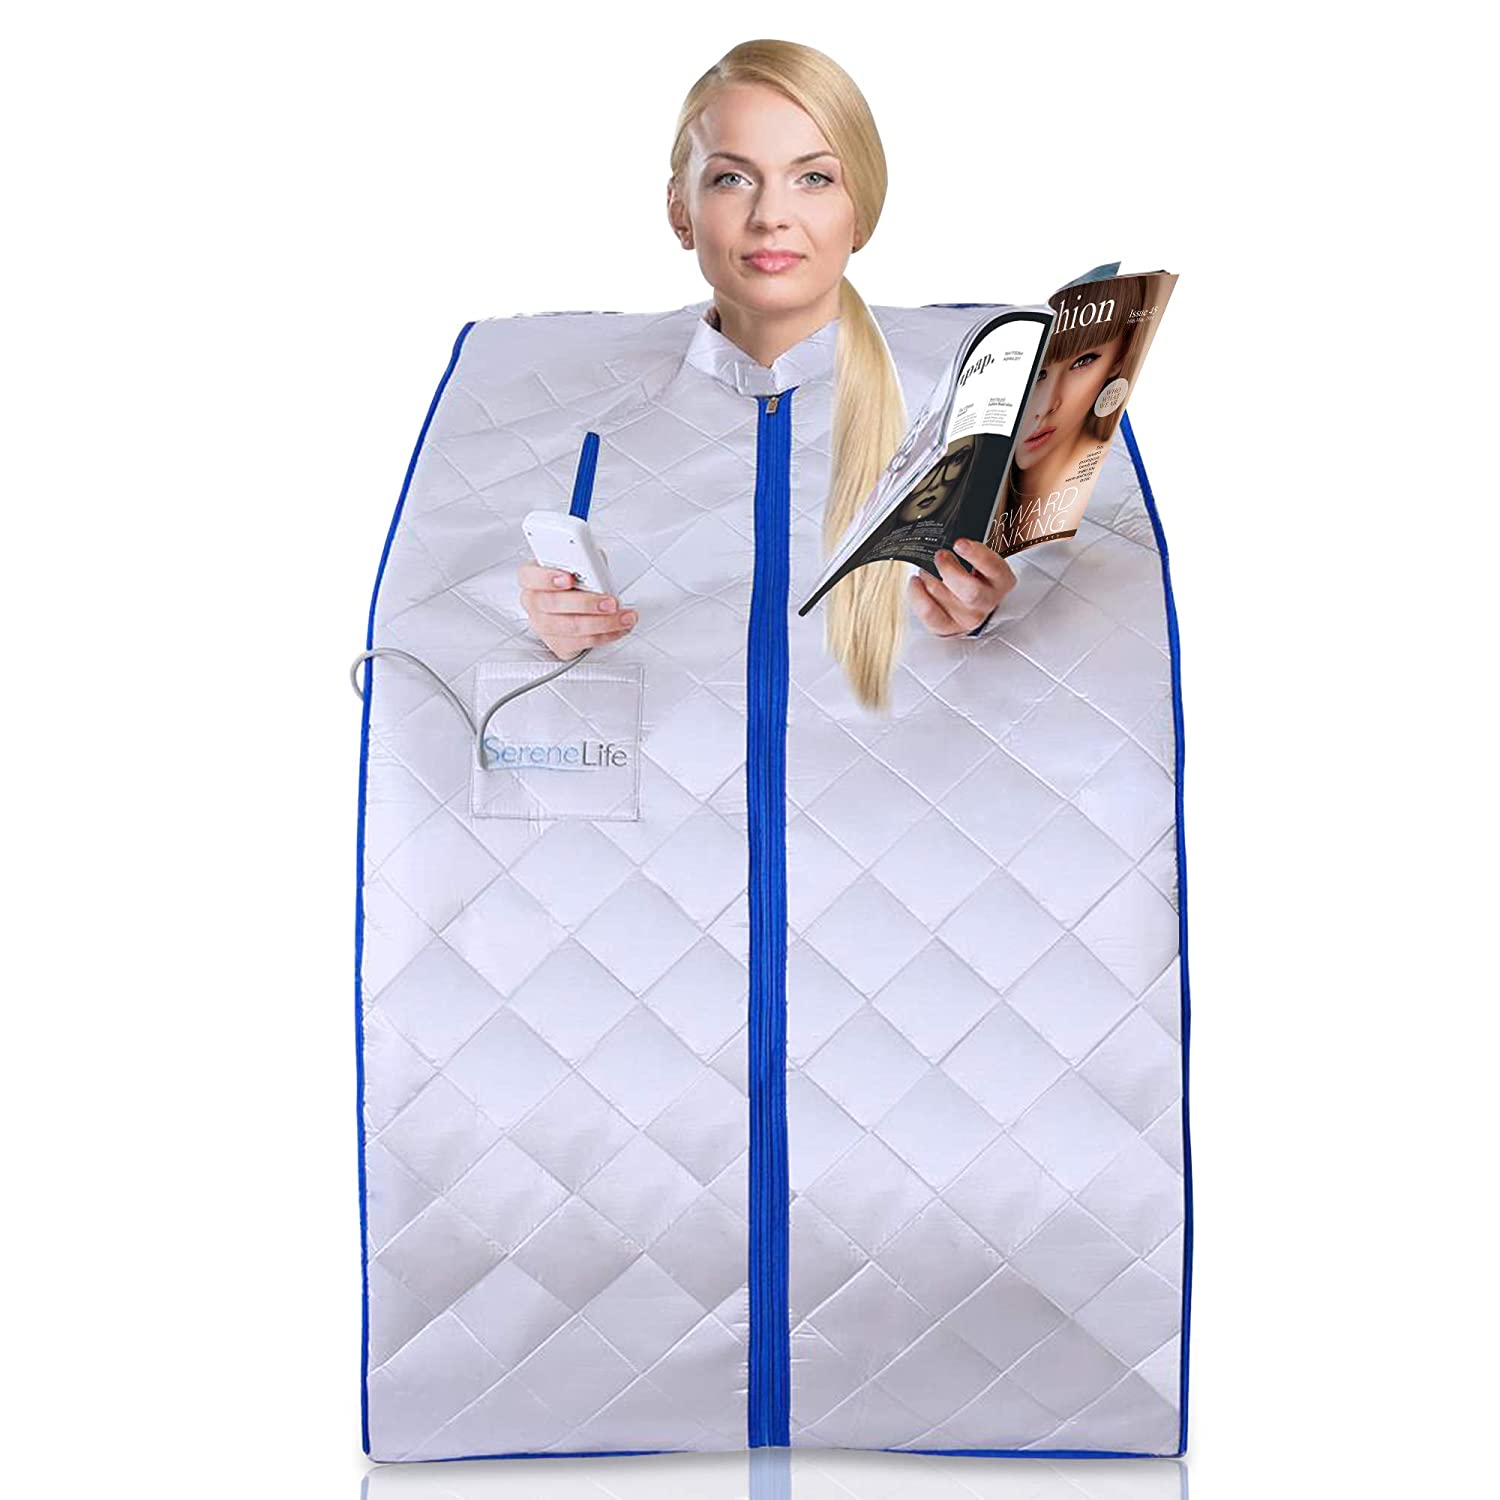 SereneLife Portable Infrared Home Spa One Person Sauna Heating Foot Pad and Chair